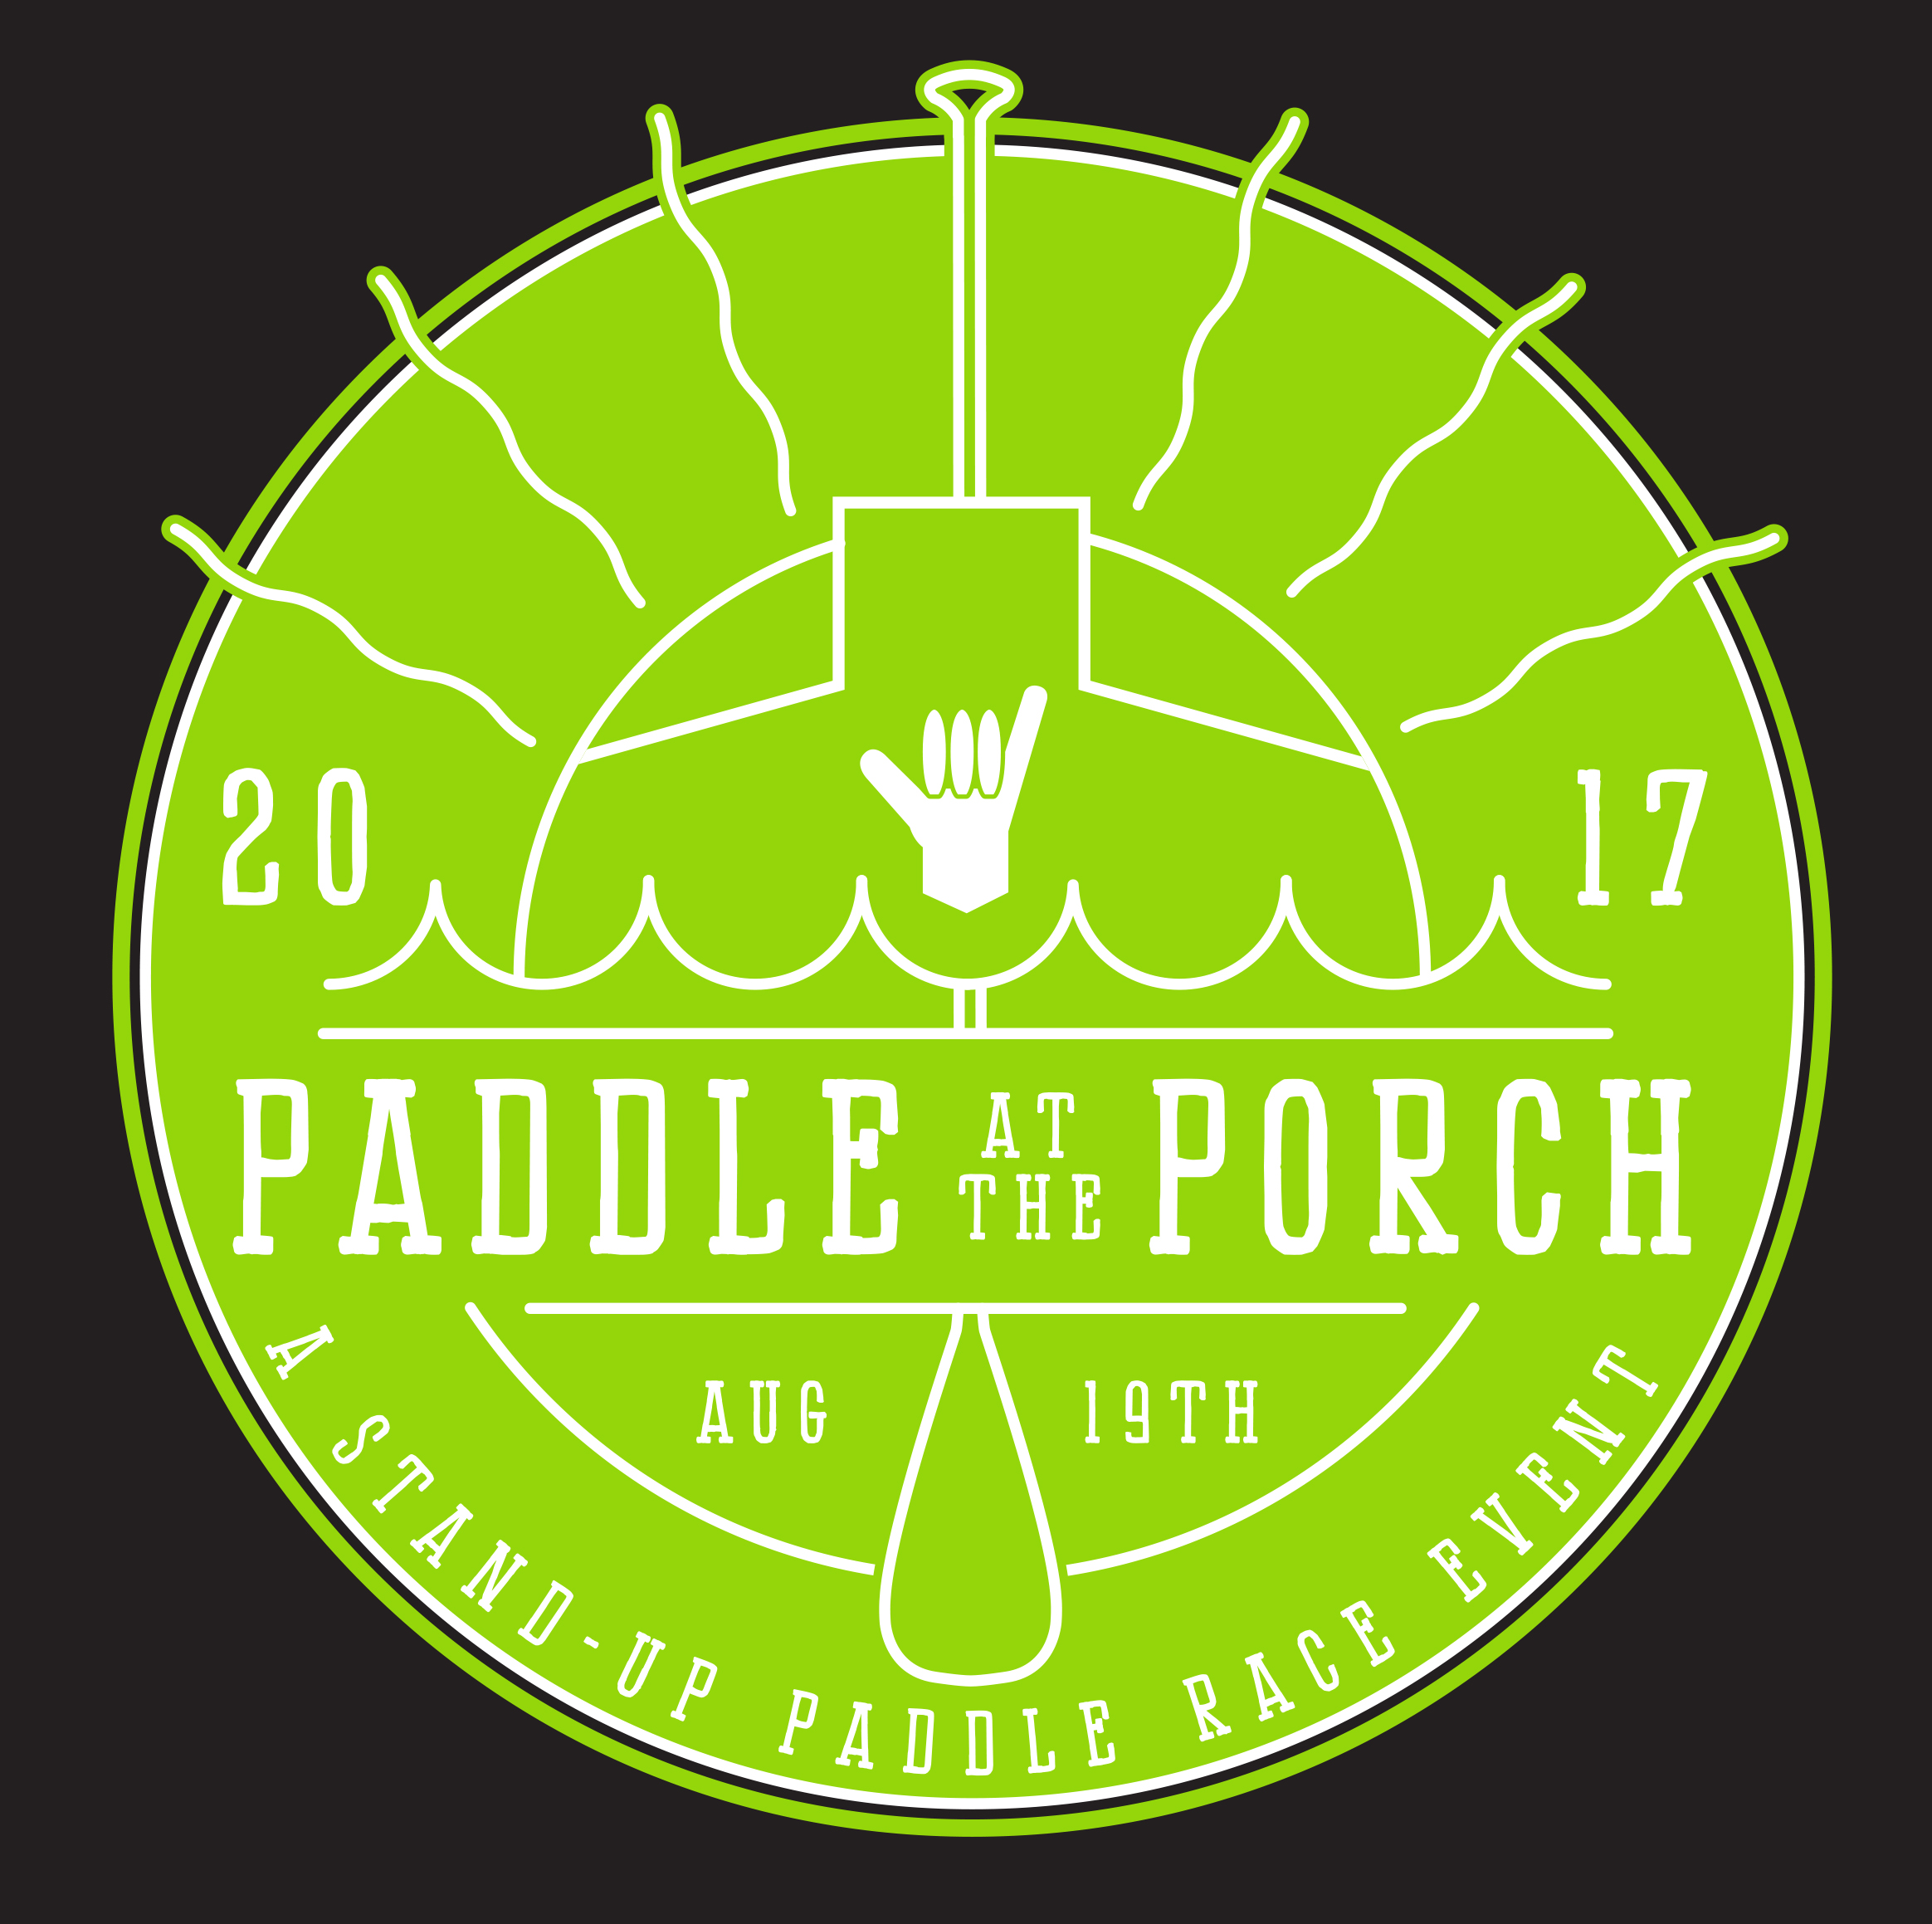 Paddle at the Porch 2017